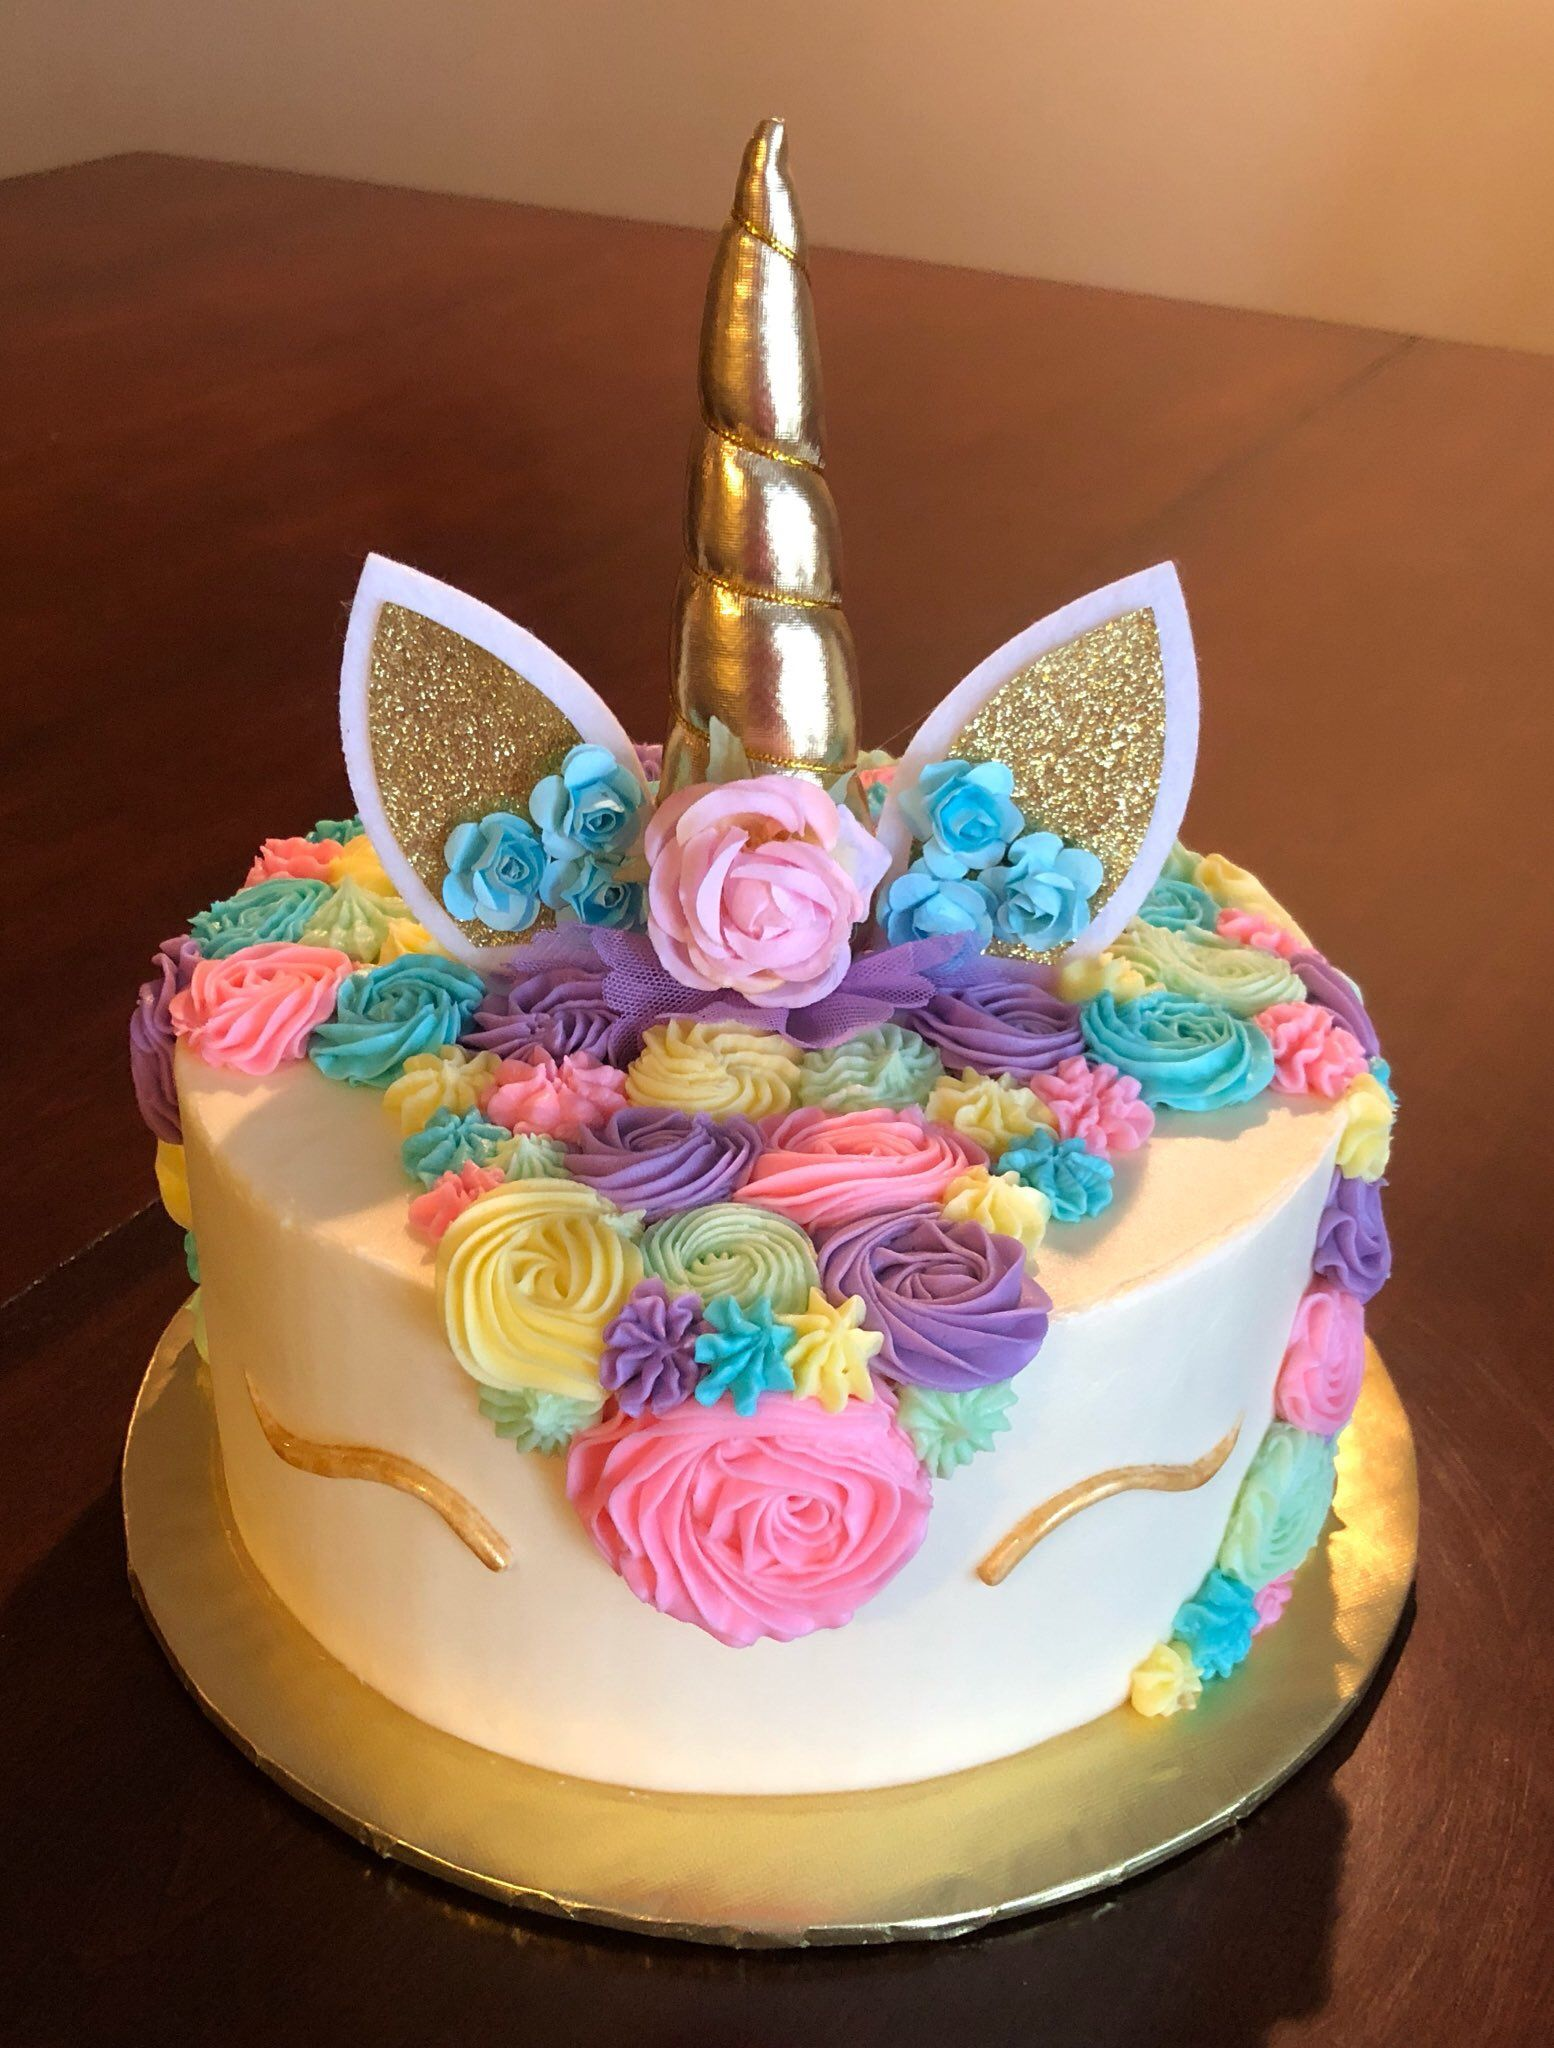 This birthday celebration called for a colorful unicorn cake